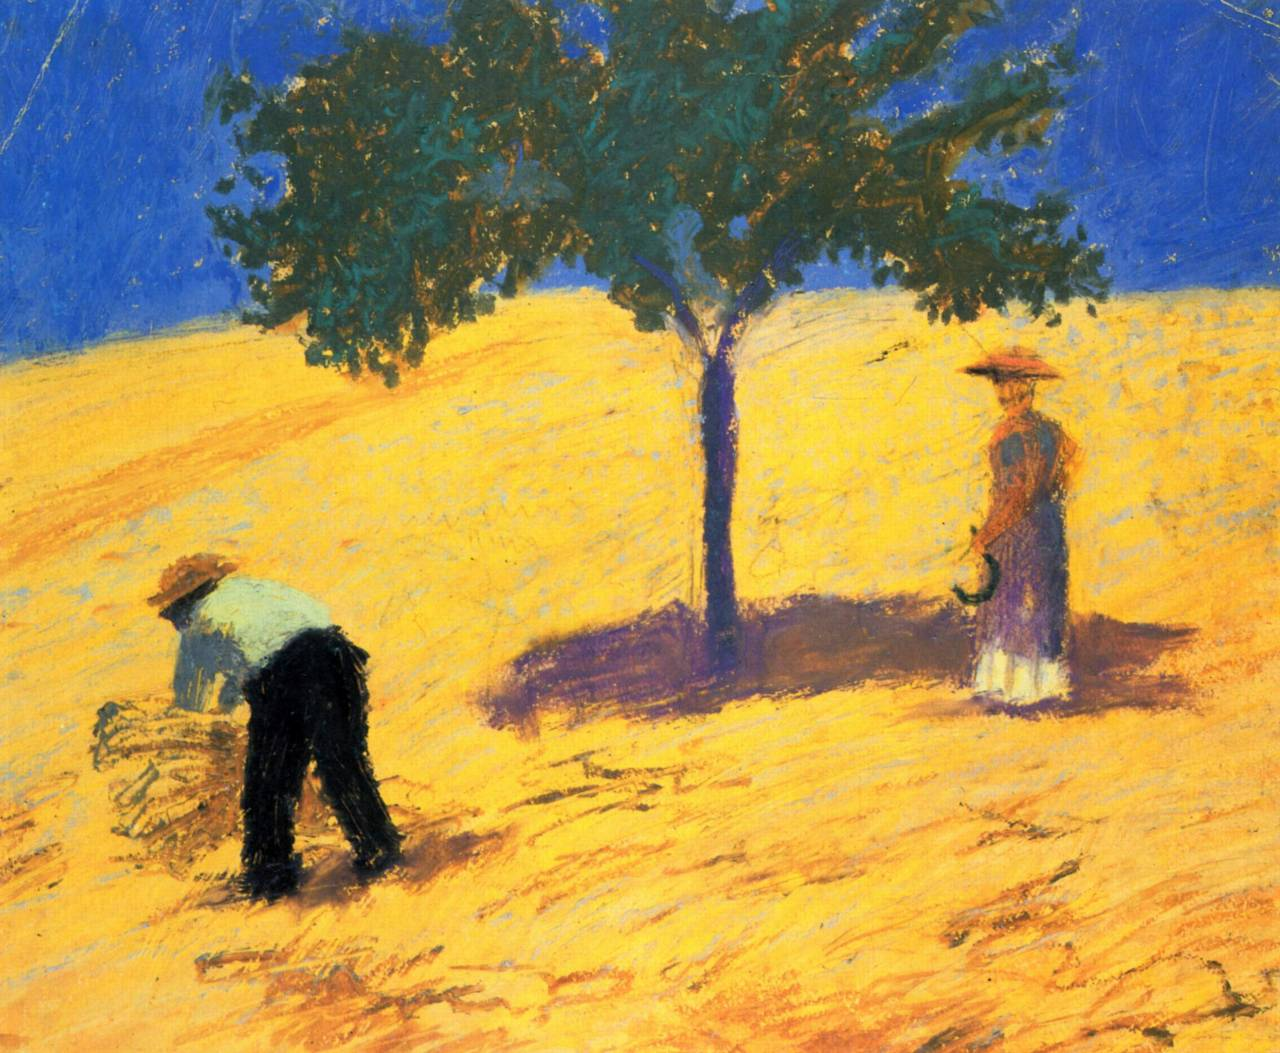 artist-macke: